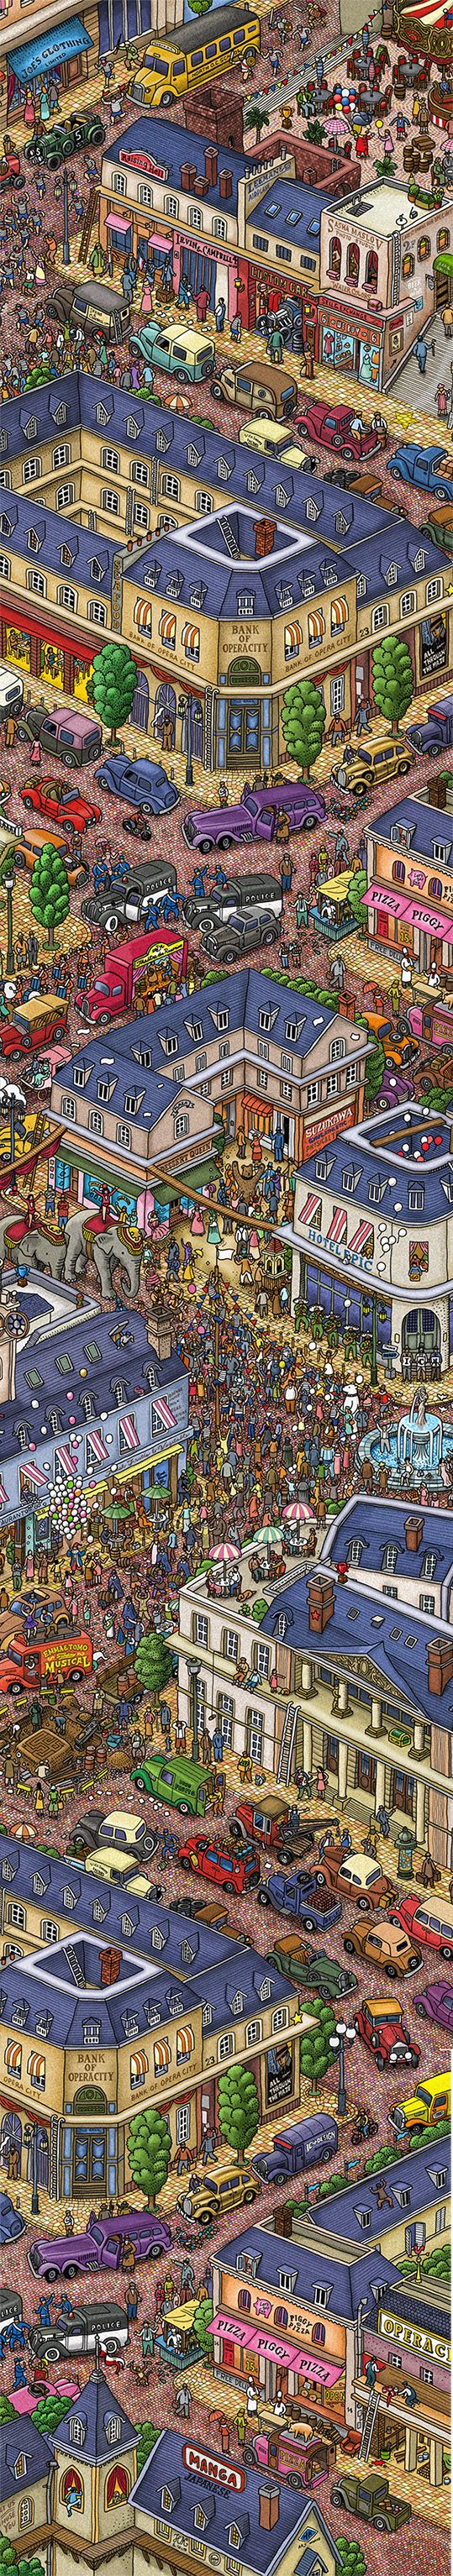 """""""The Town Makes Merry"""" by IC4DESIGN We made a vertically long illustration utilize Our site character, with fit to the Web browser. (Source : Pierre The MAZE DETECTIVE)"""